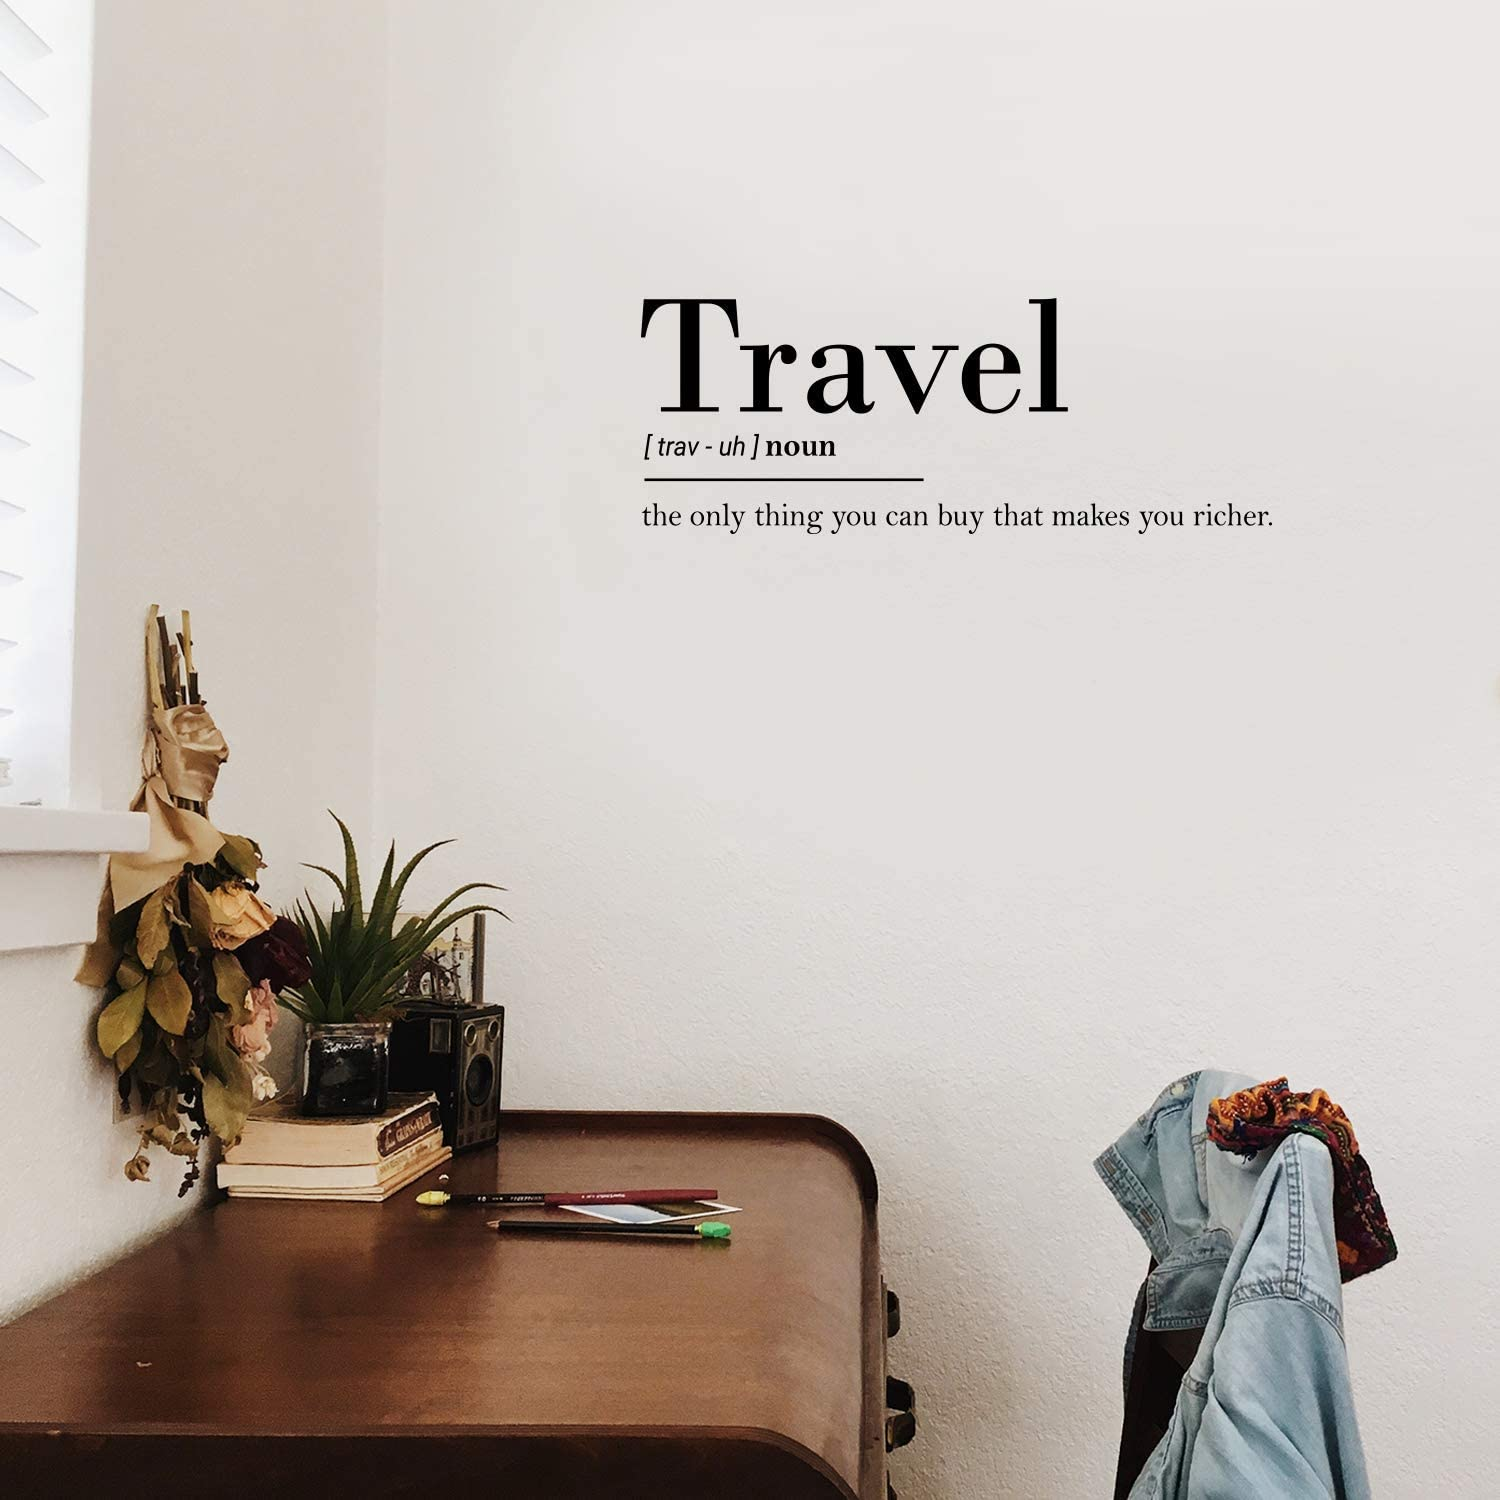 "Vinyl Wall Art Decal - Travel The Only Thing You Can Buy That Makes You Richer- 10"" x 27"" - Trendy Funny Optimistic Travel Quote Bedroom Living Room Office Coffee Shop Agency Travelers Decor (Black)"